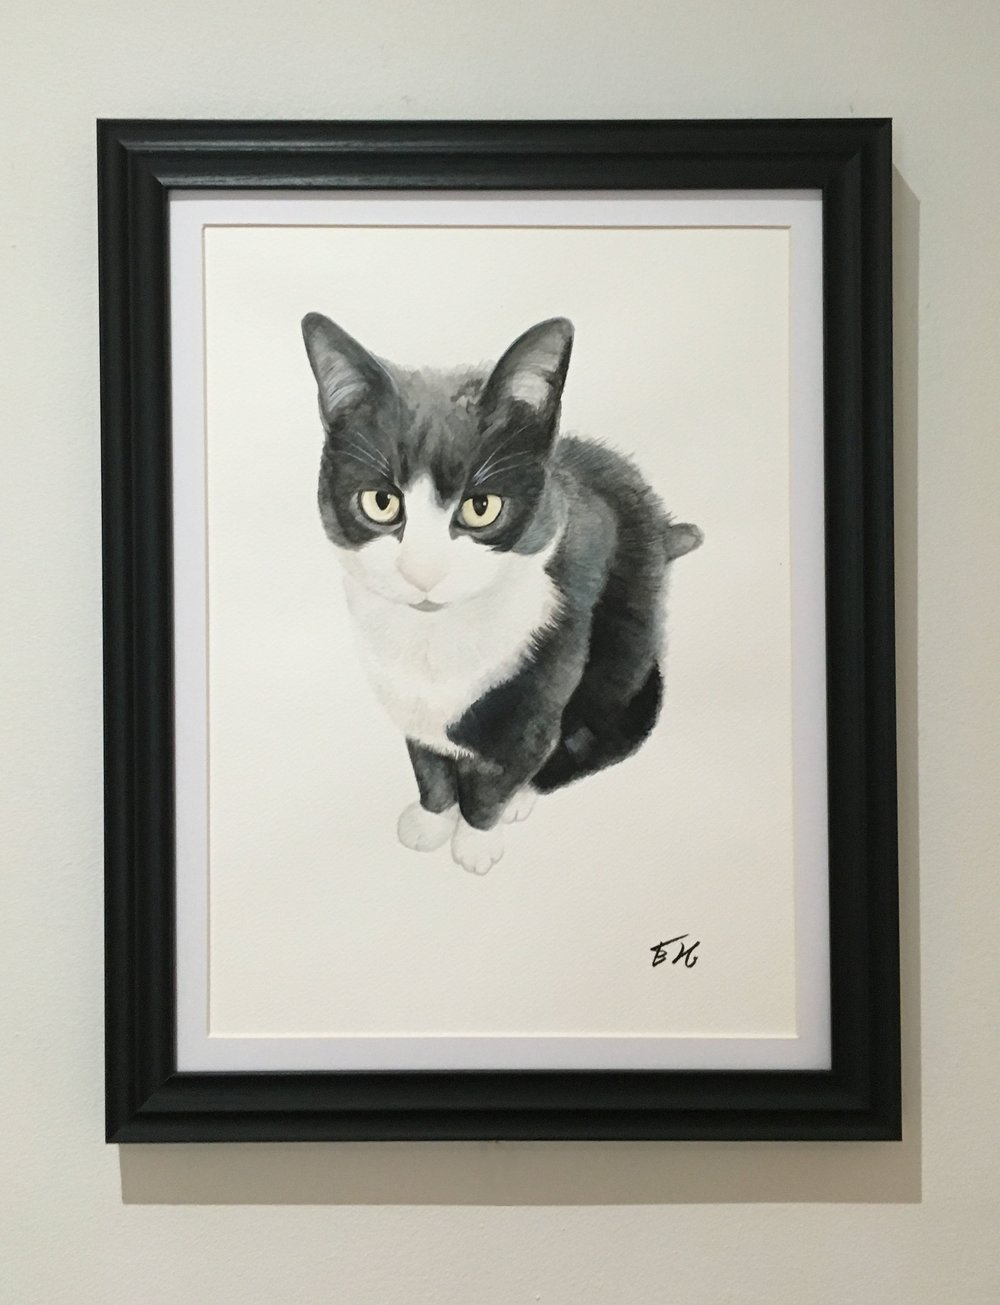 framed lous cat.jpg